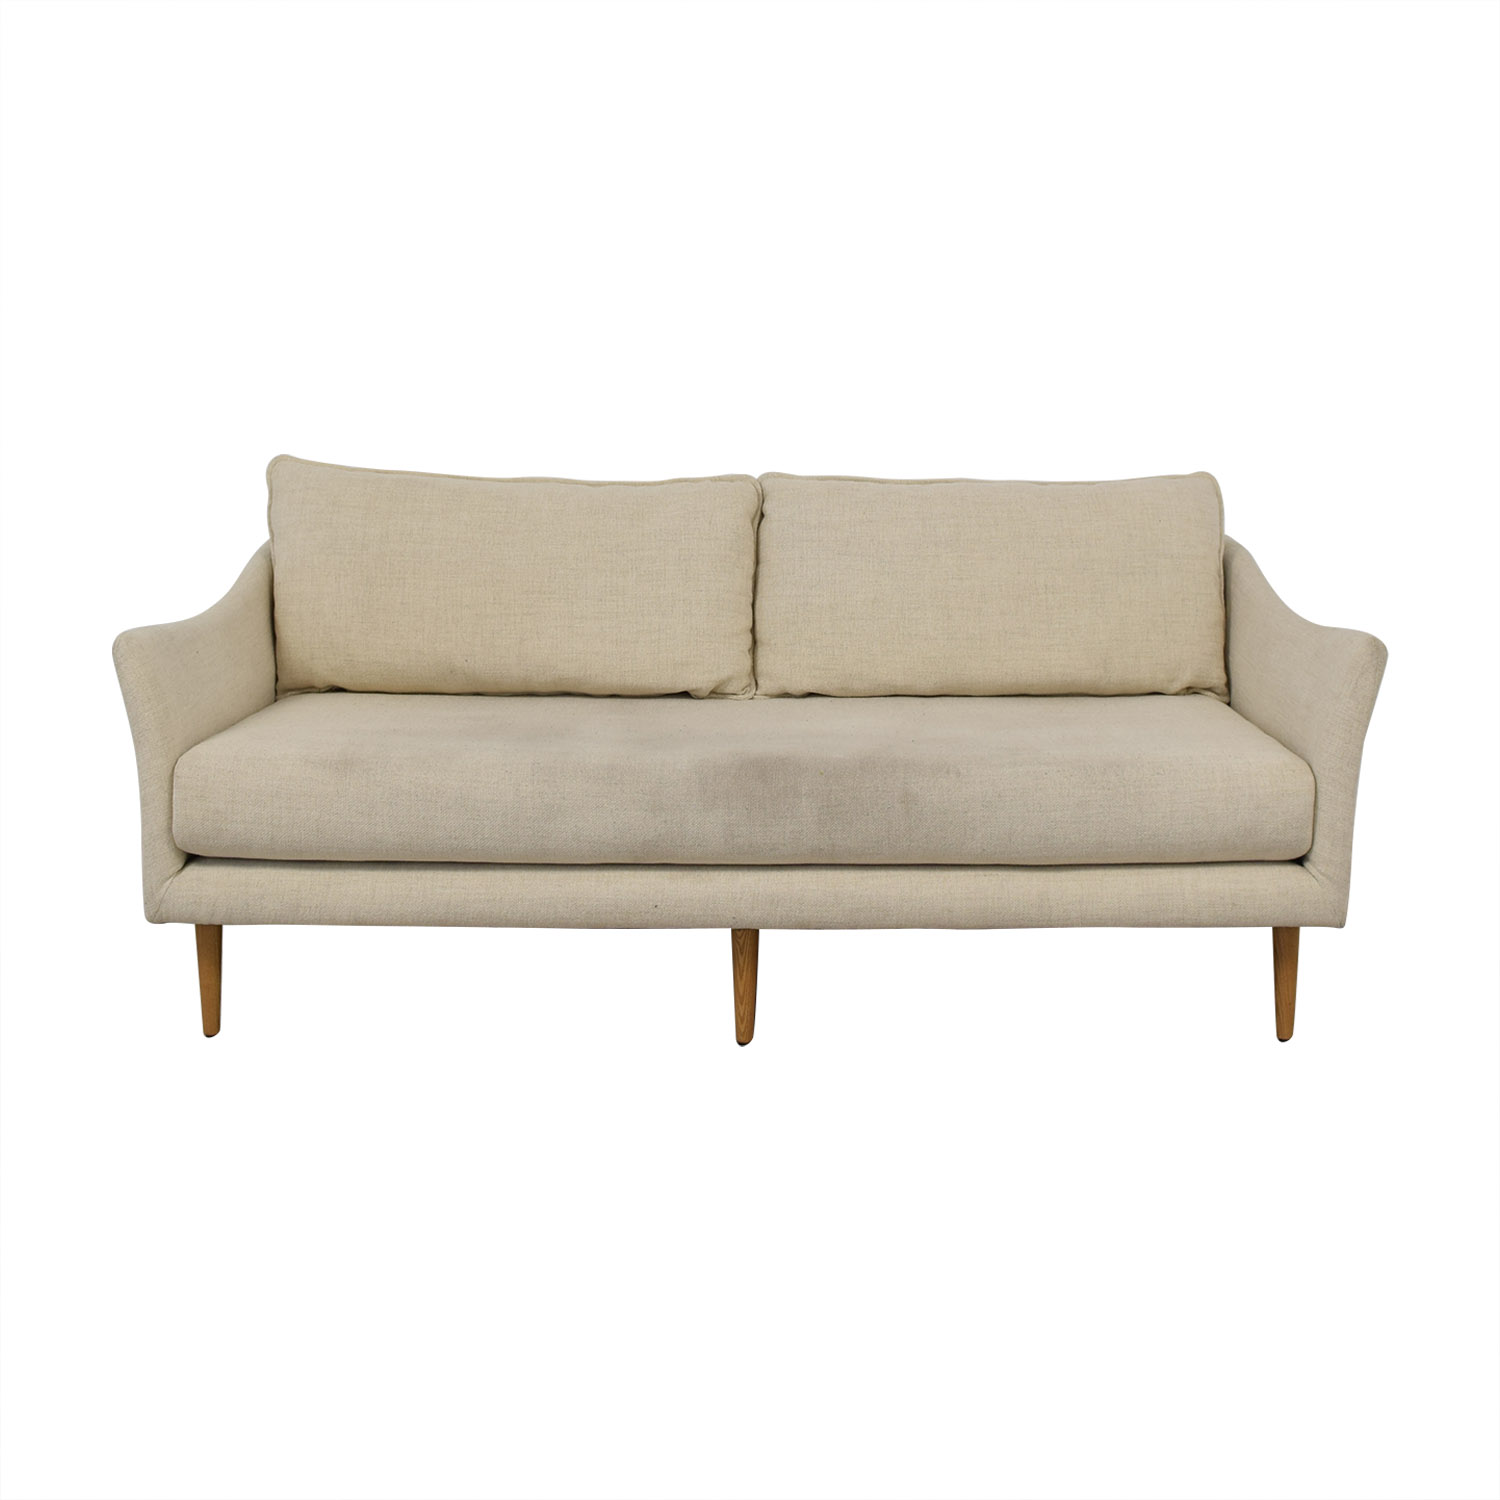 West Elm West Elm Antwerp Sofa second hand